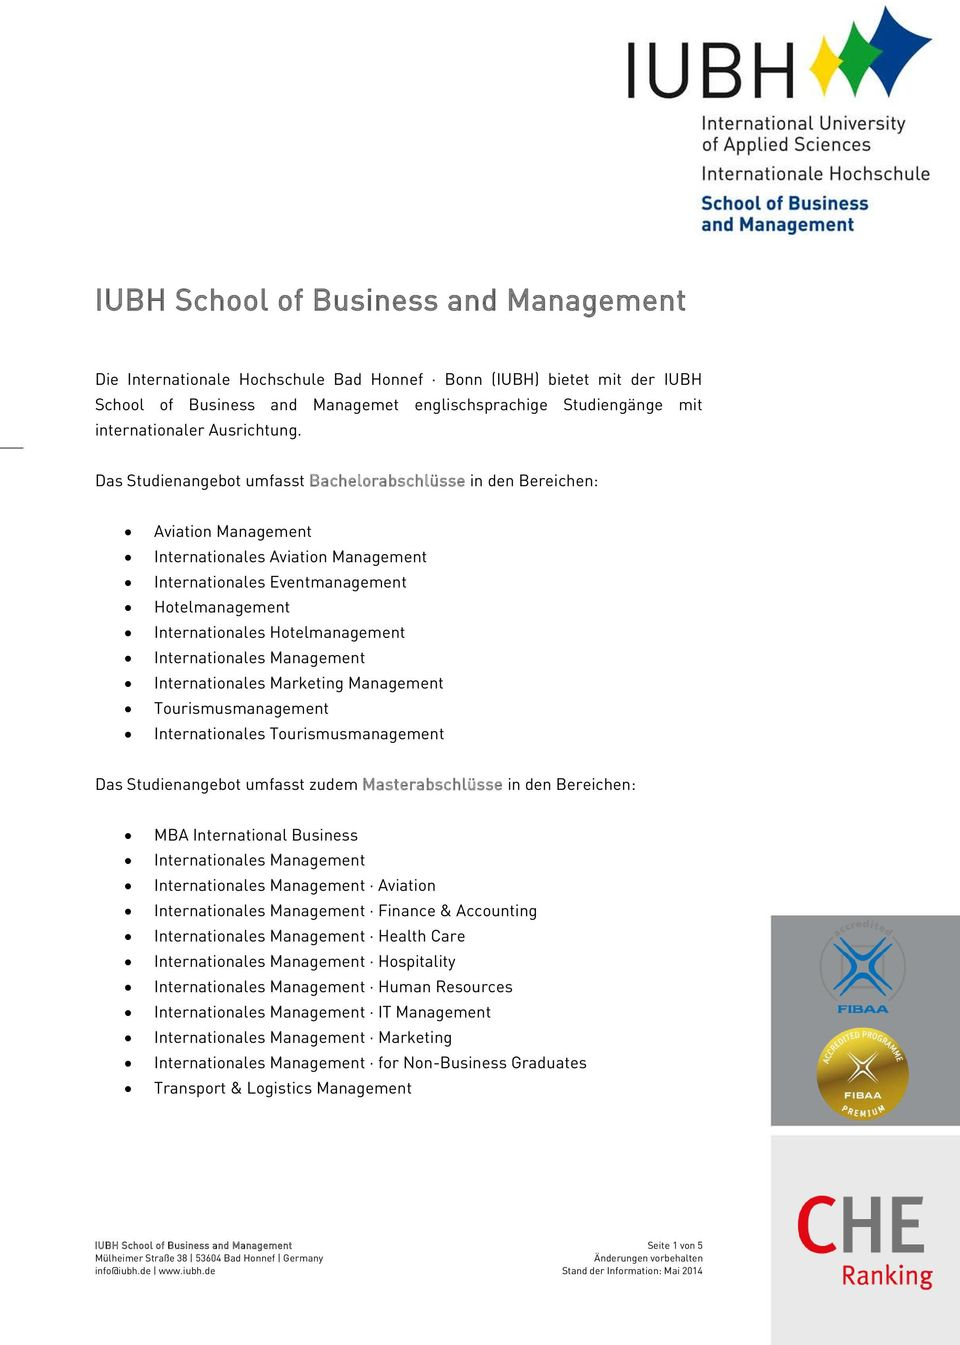 Das Studienangebot umfasst Bachelorabschlüsse in den Bereichen: Aviation Management Internationales Aviation Management Internationales Eventmanagement Hotelmanagement Internationales Hotelmanagement